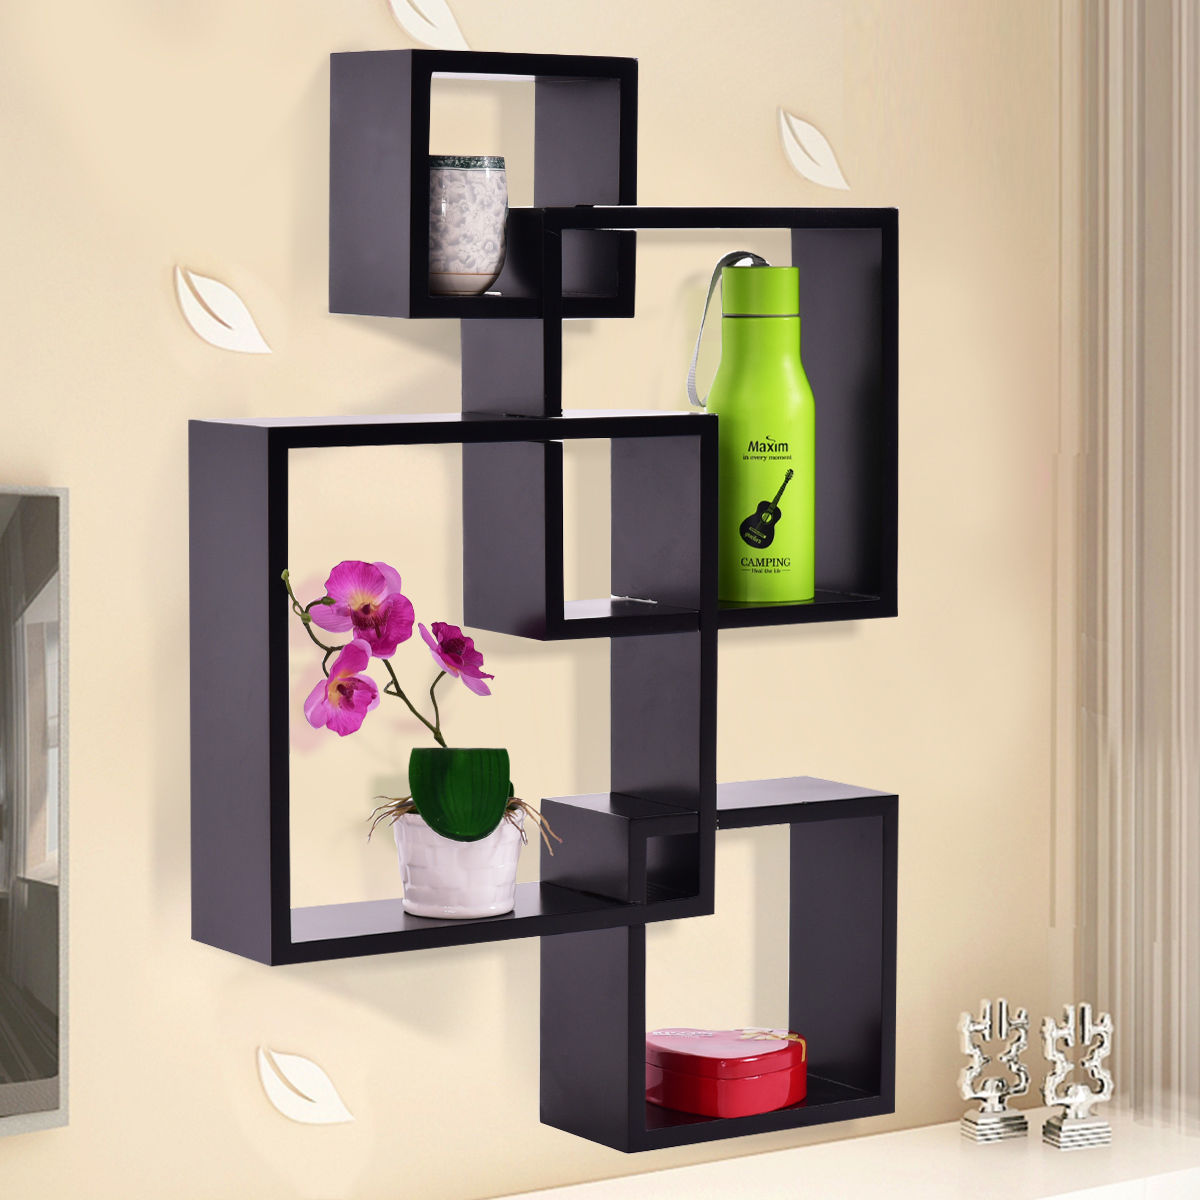 Costway Black Intersecting 4 Square Floating Shelf Wall Mounted Home Furniture Decor by Costway